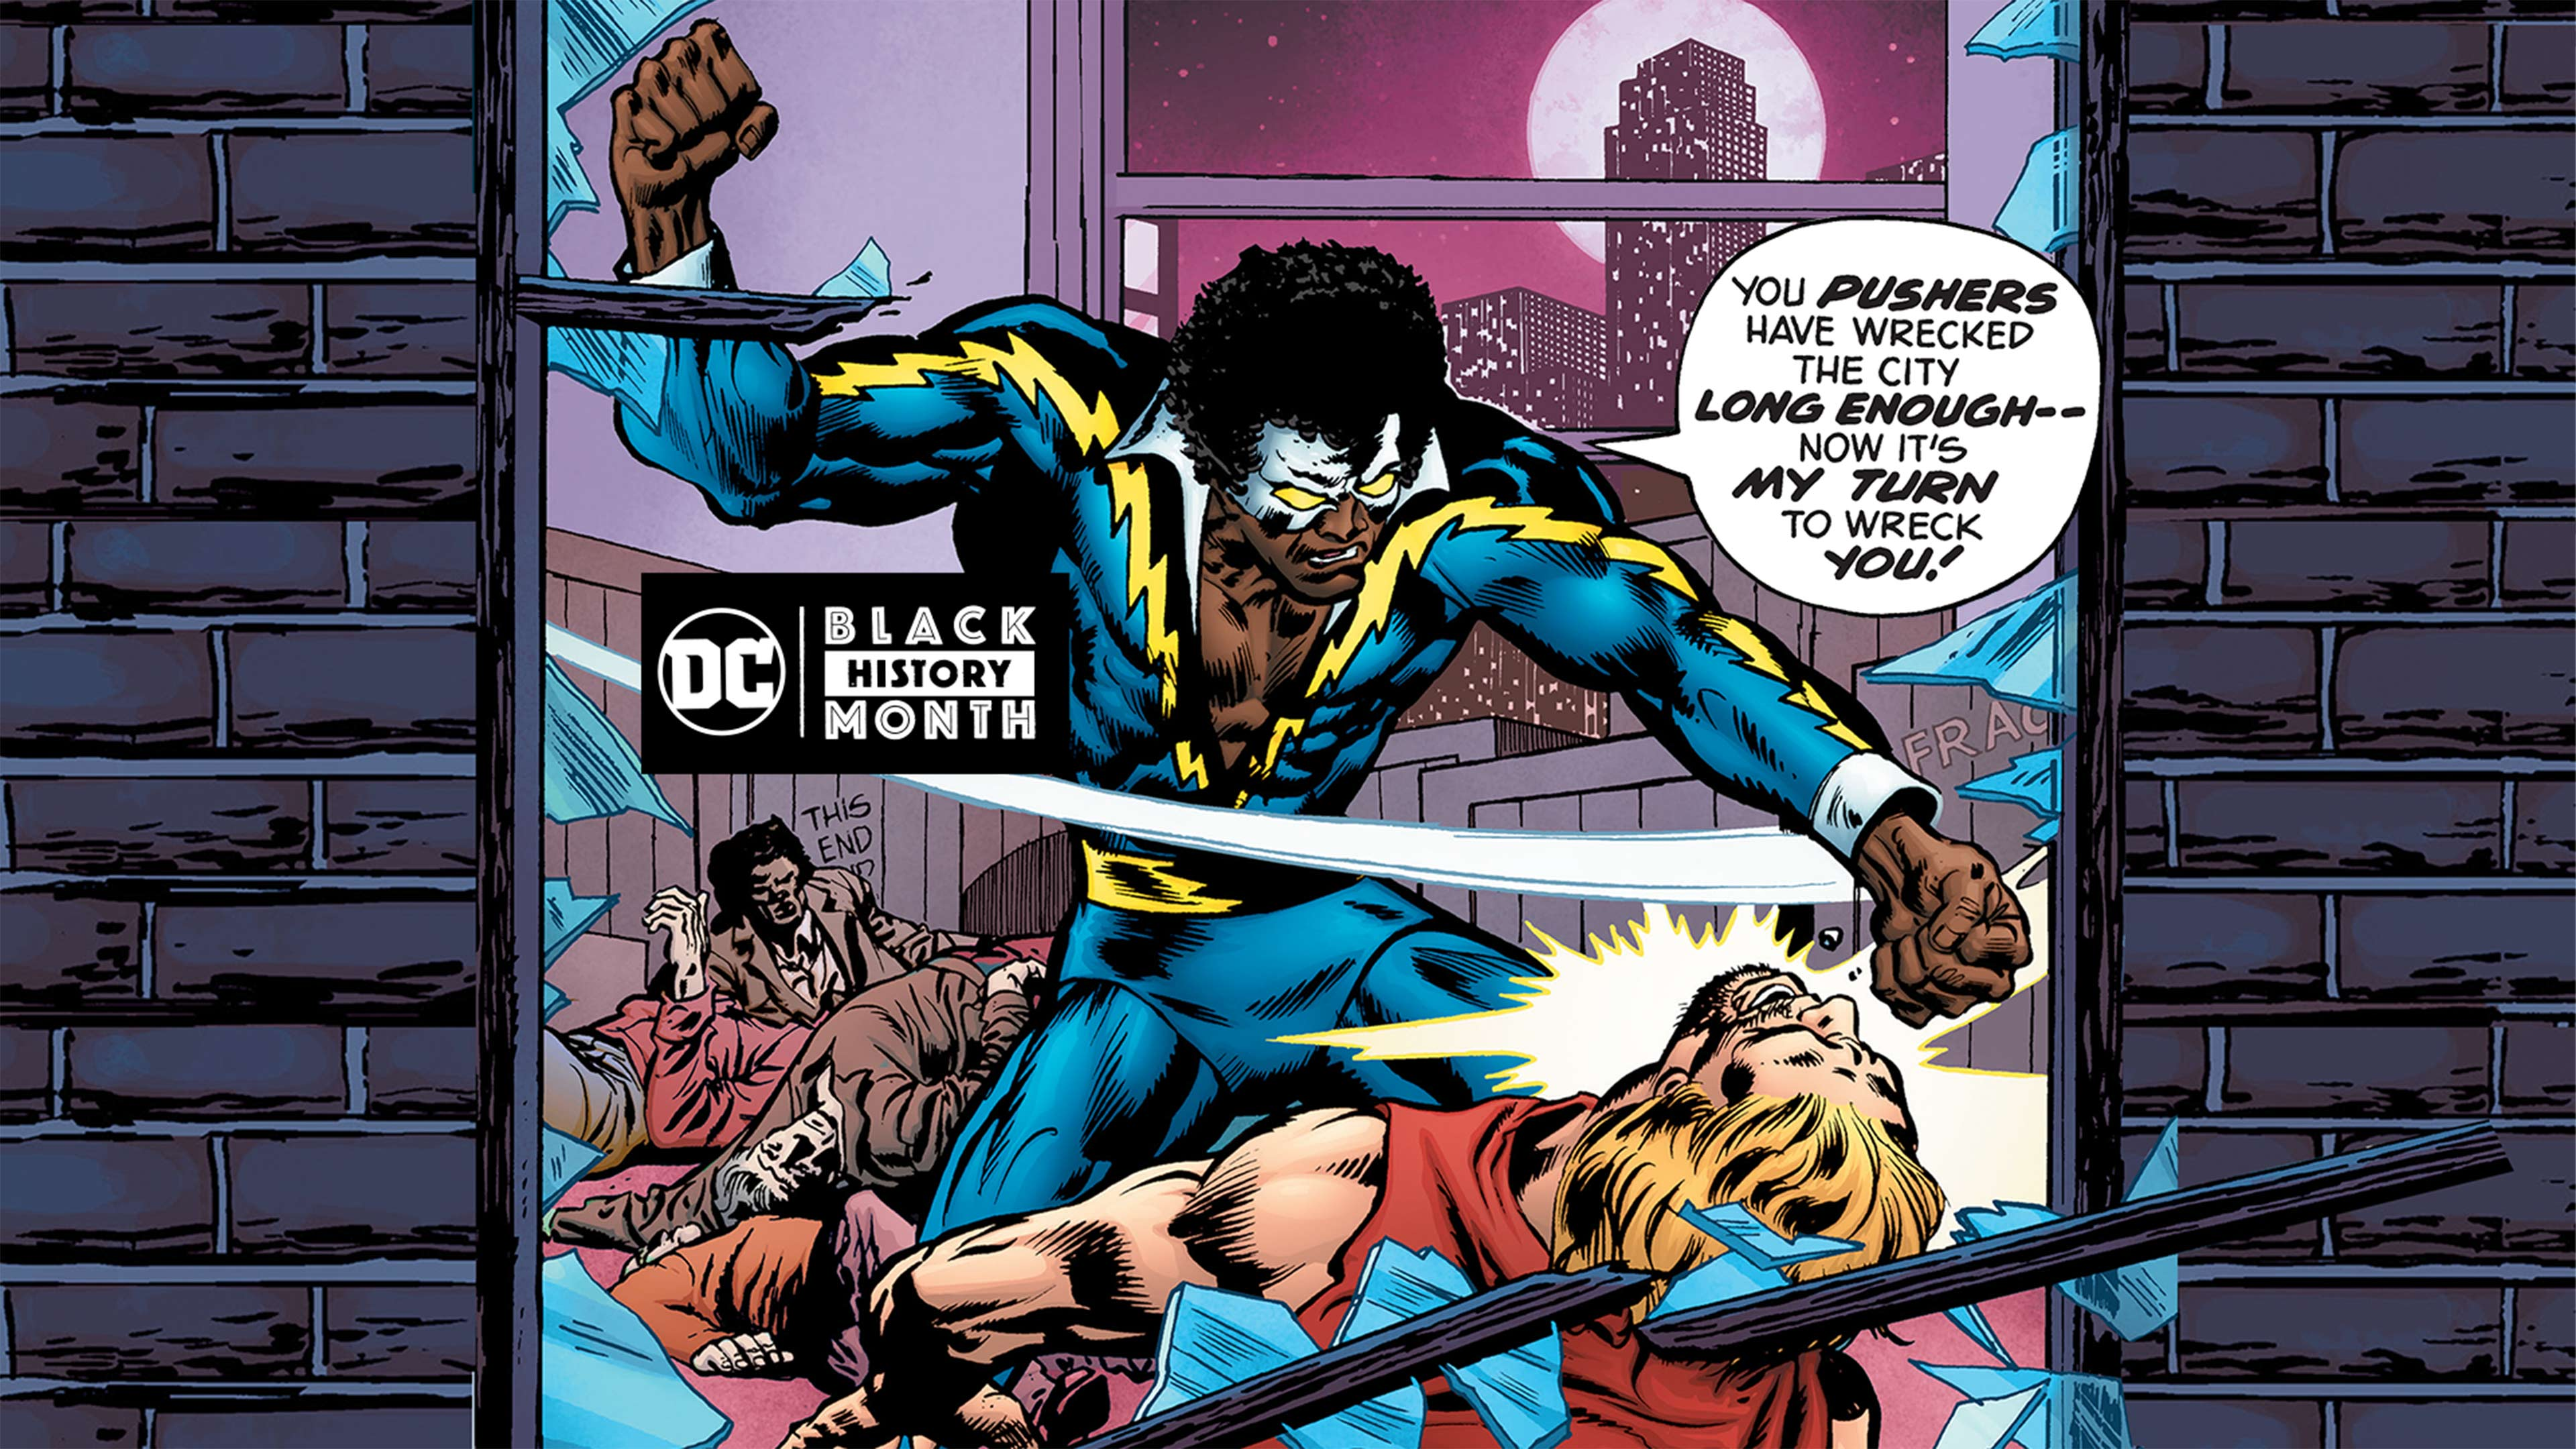 bhm_blacklightning_news_hero-c_v1_200206.jpg